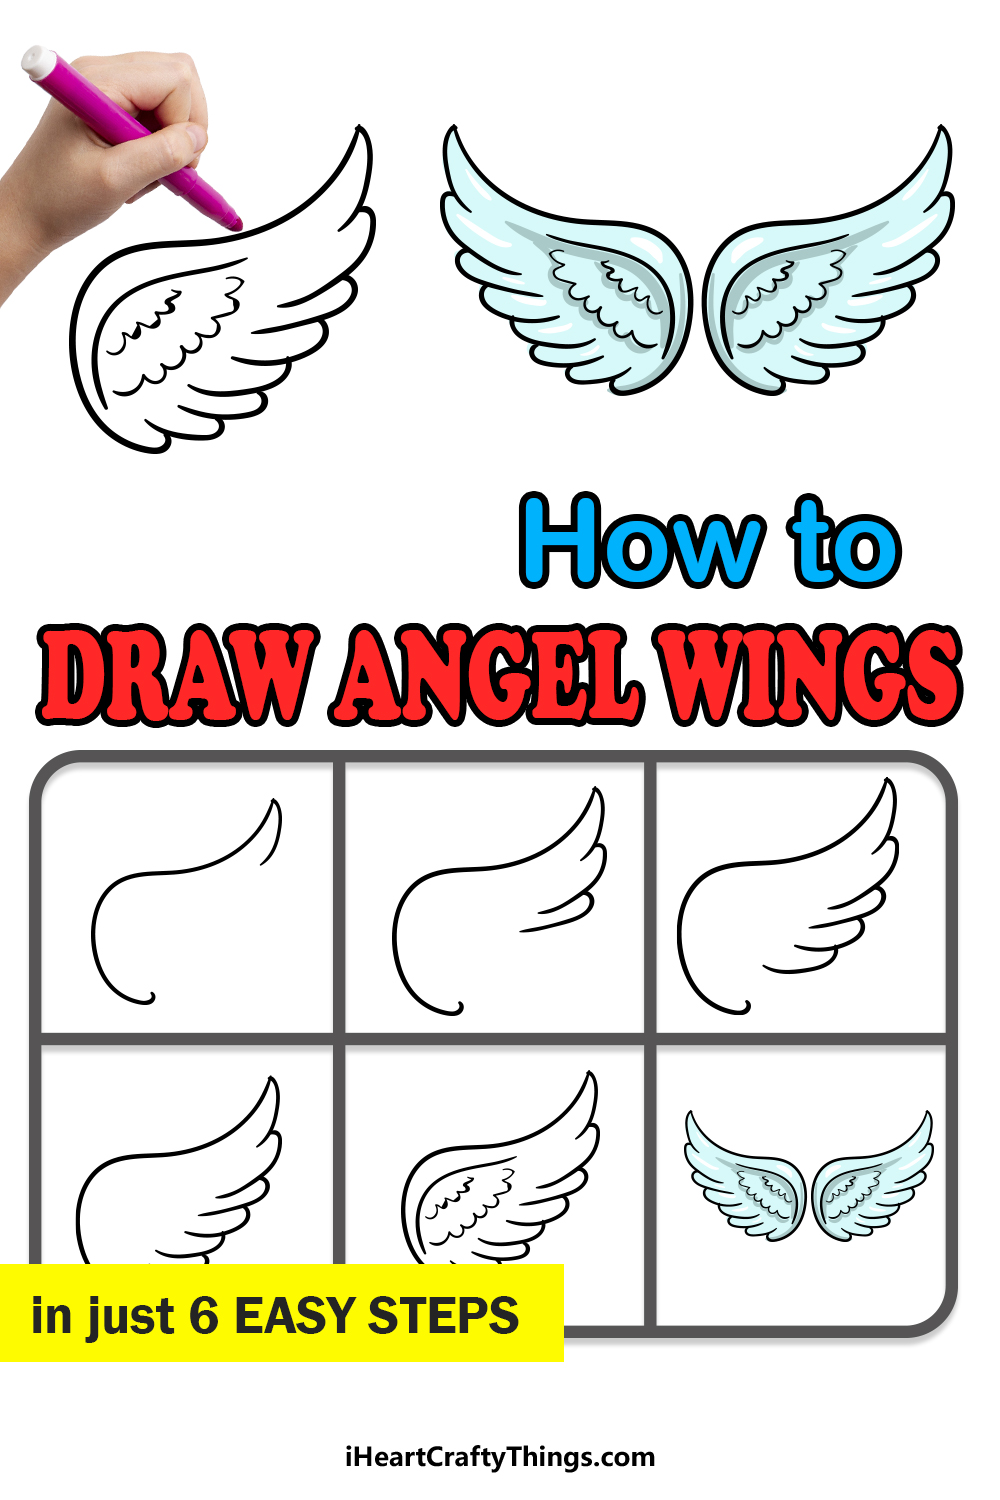 how to draw angel wings in 6 easy steps